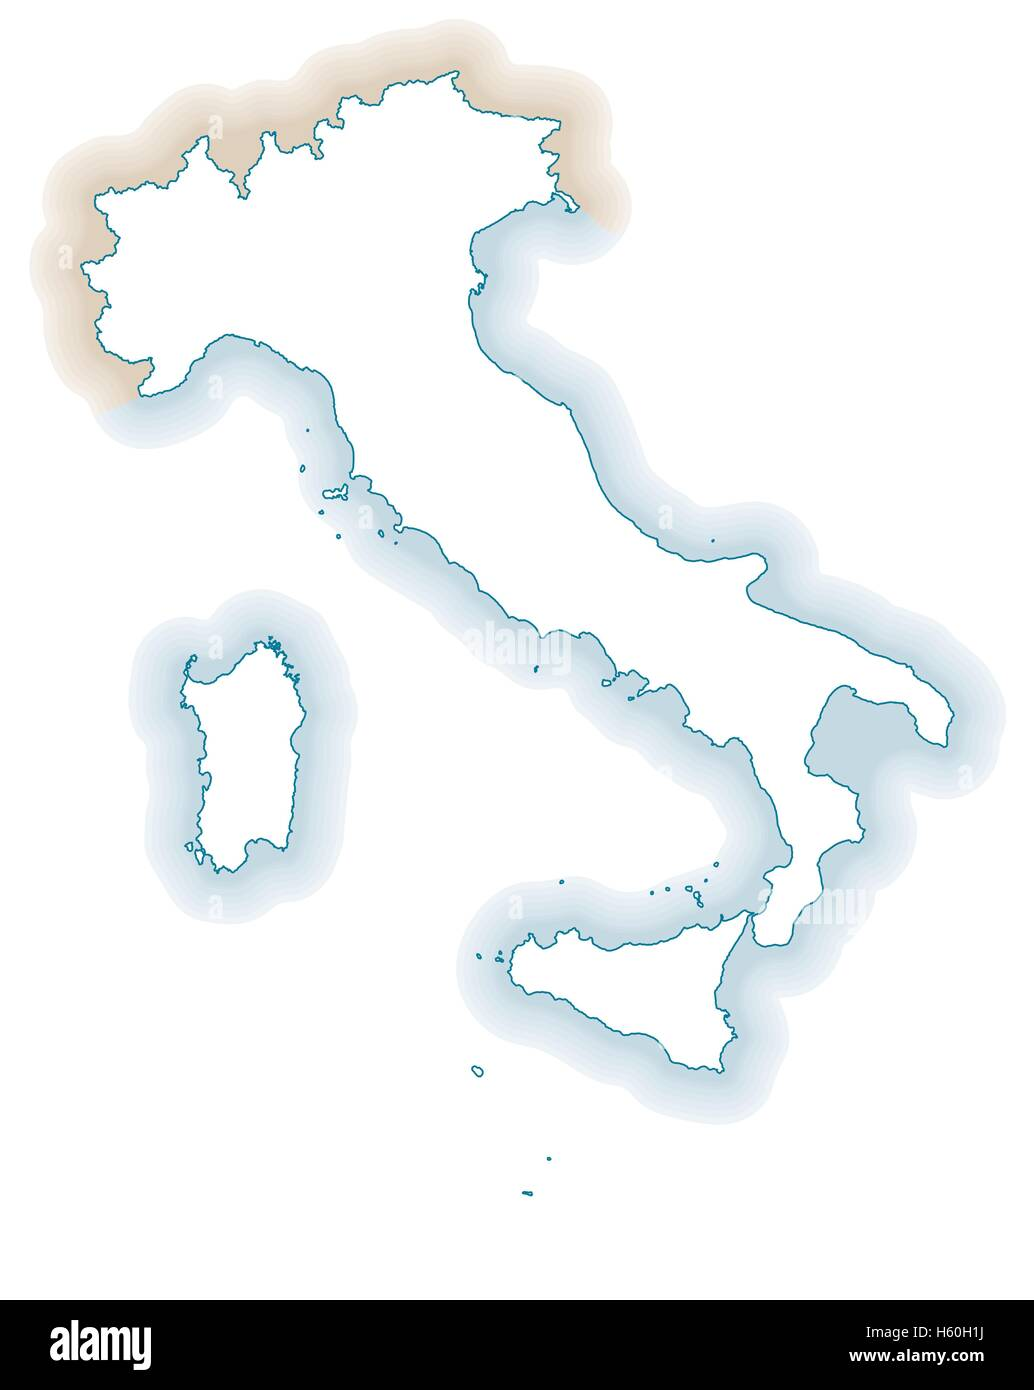 Italy Country Outline Stock Photos Amp Italy Country Outline